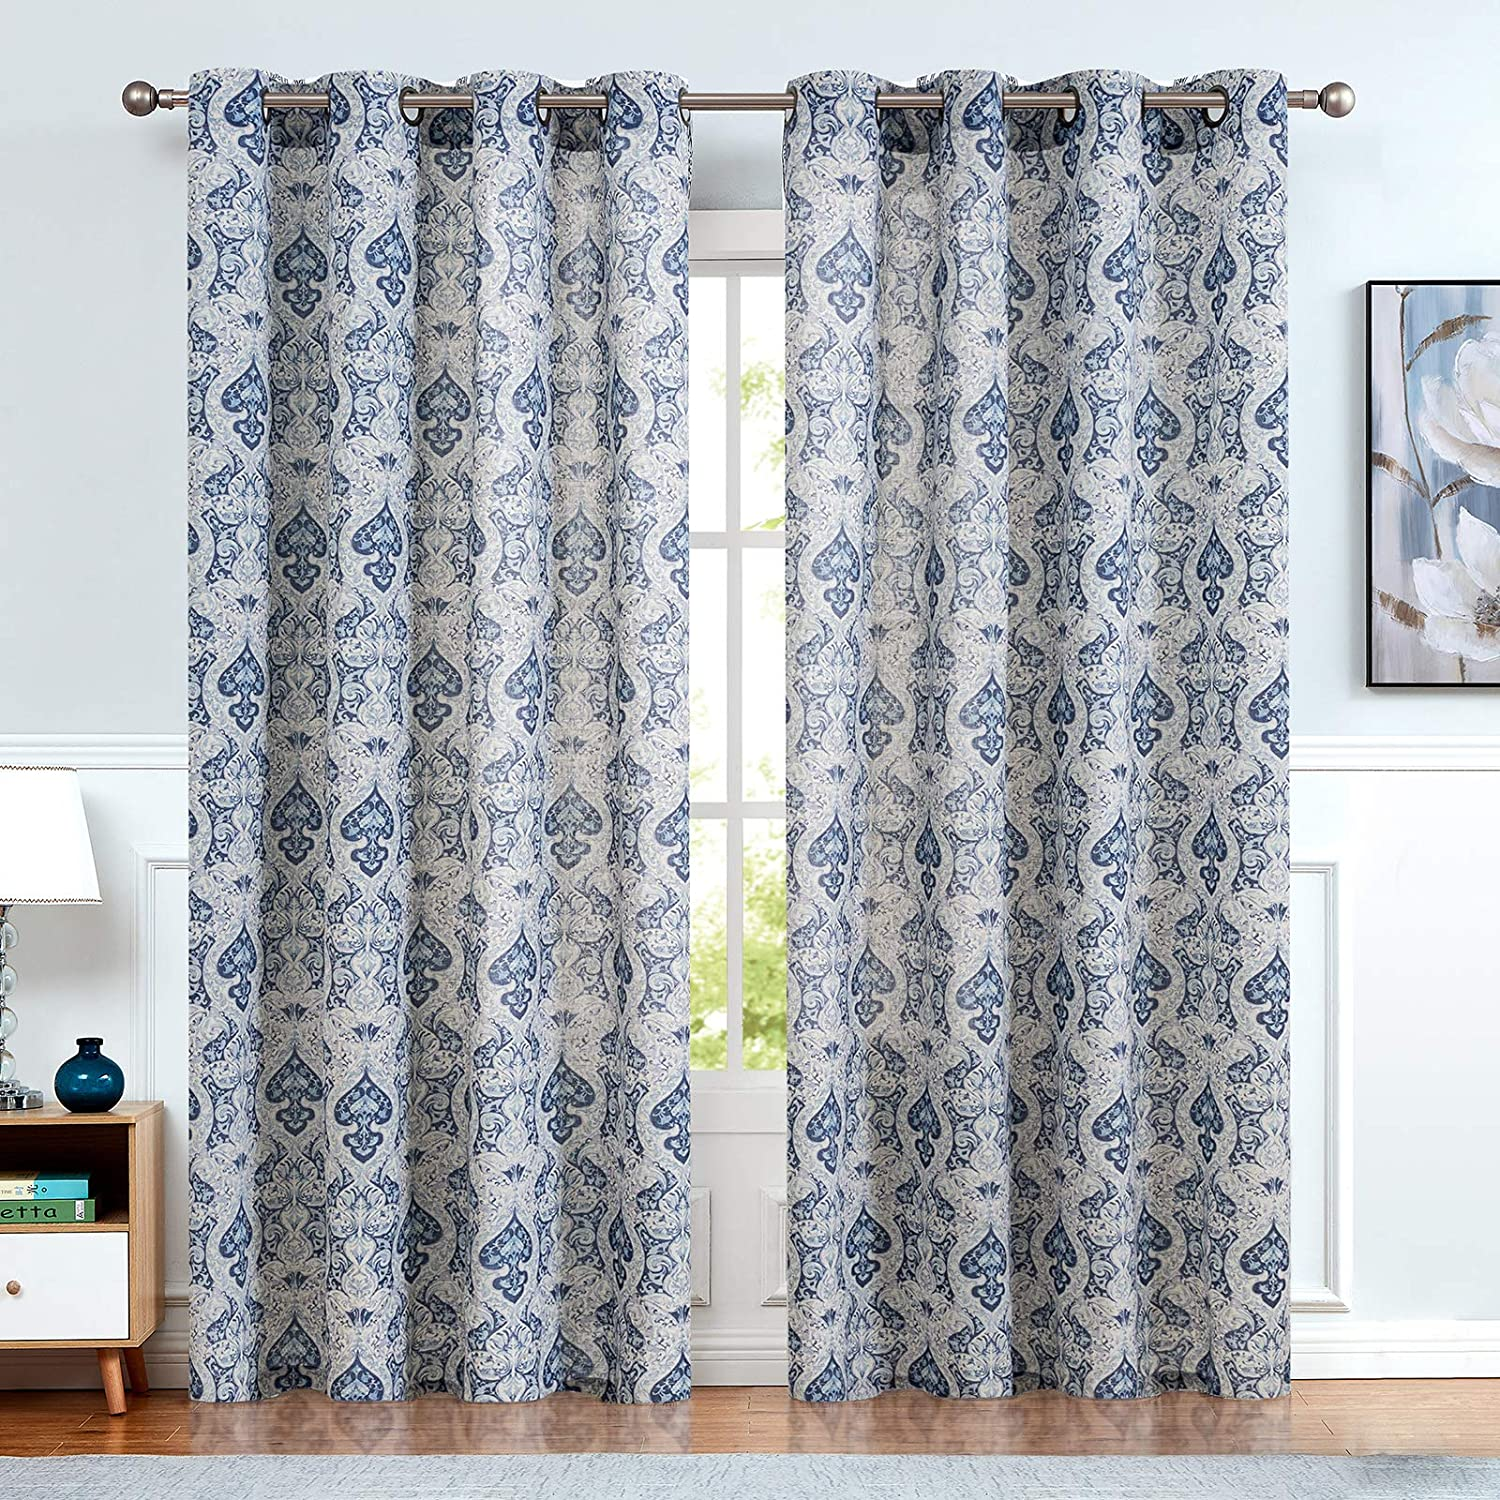 jinchan Damask Printed Paisley Tie Up Shade Curtains Rod Pocket Drapes Multicolor Medallion Flax Living Rooms Window Curtain 1 Panel,42 45, Blue